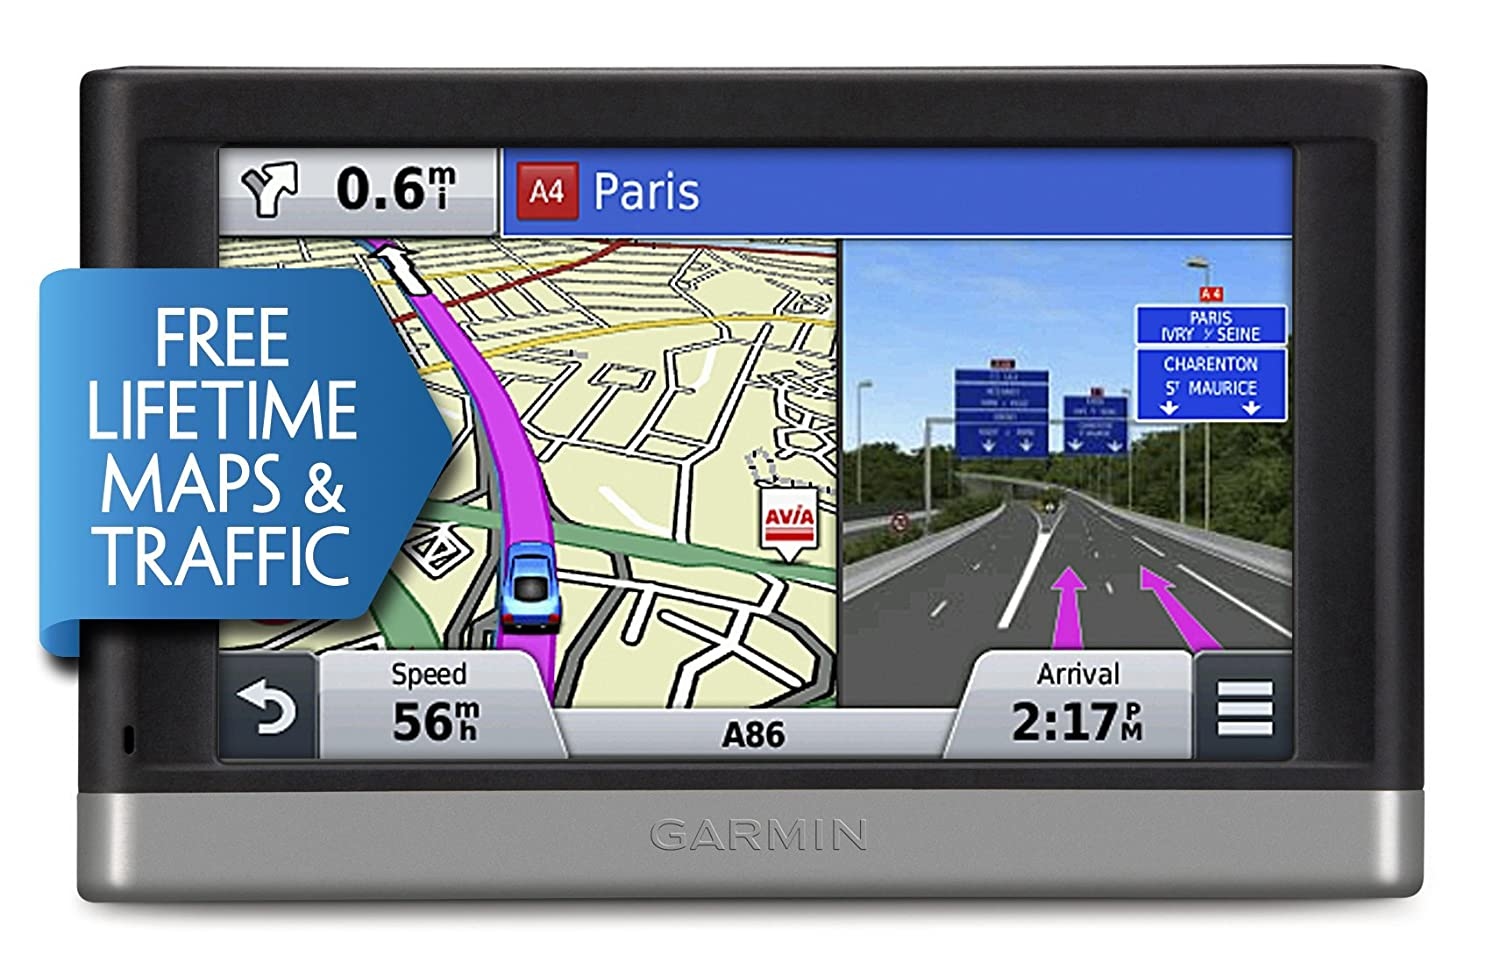 garmin nuvi lmt  inch satellite navigation with uk and full europe mapsfree lifetime map updates and free lifetime traffic alerts amazoncouk. garmin nuvi lmt  inch satellite navigation with uk and full